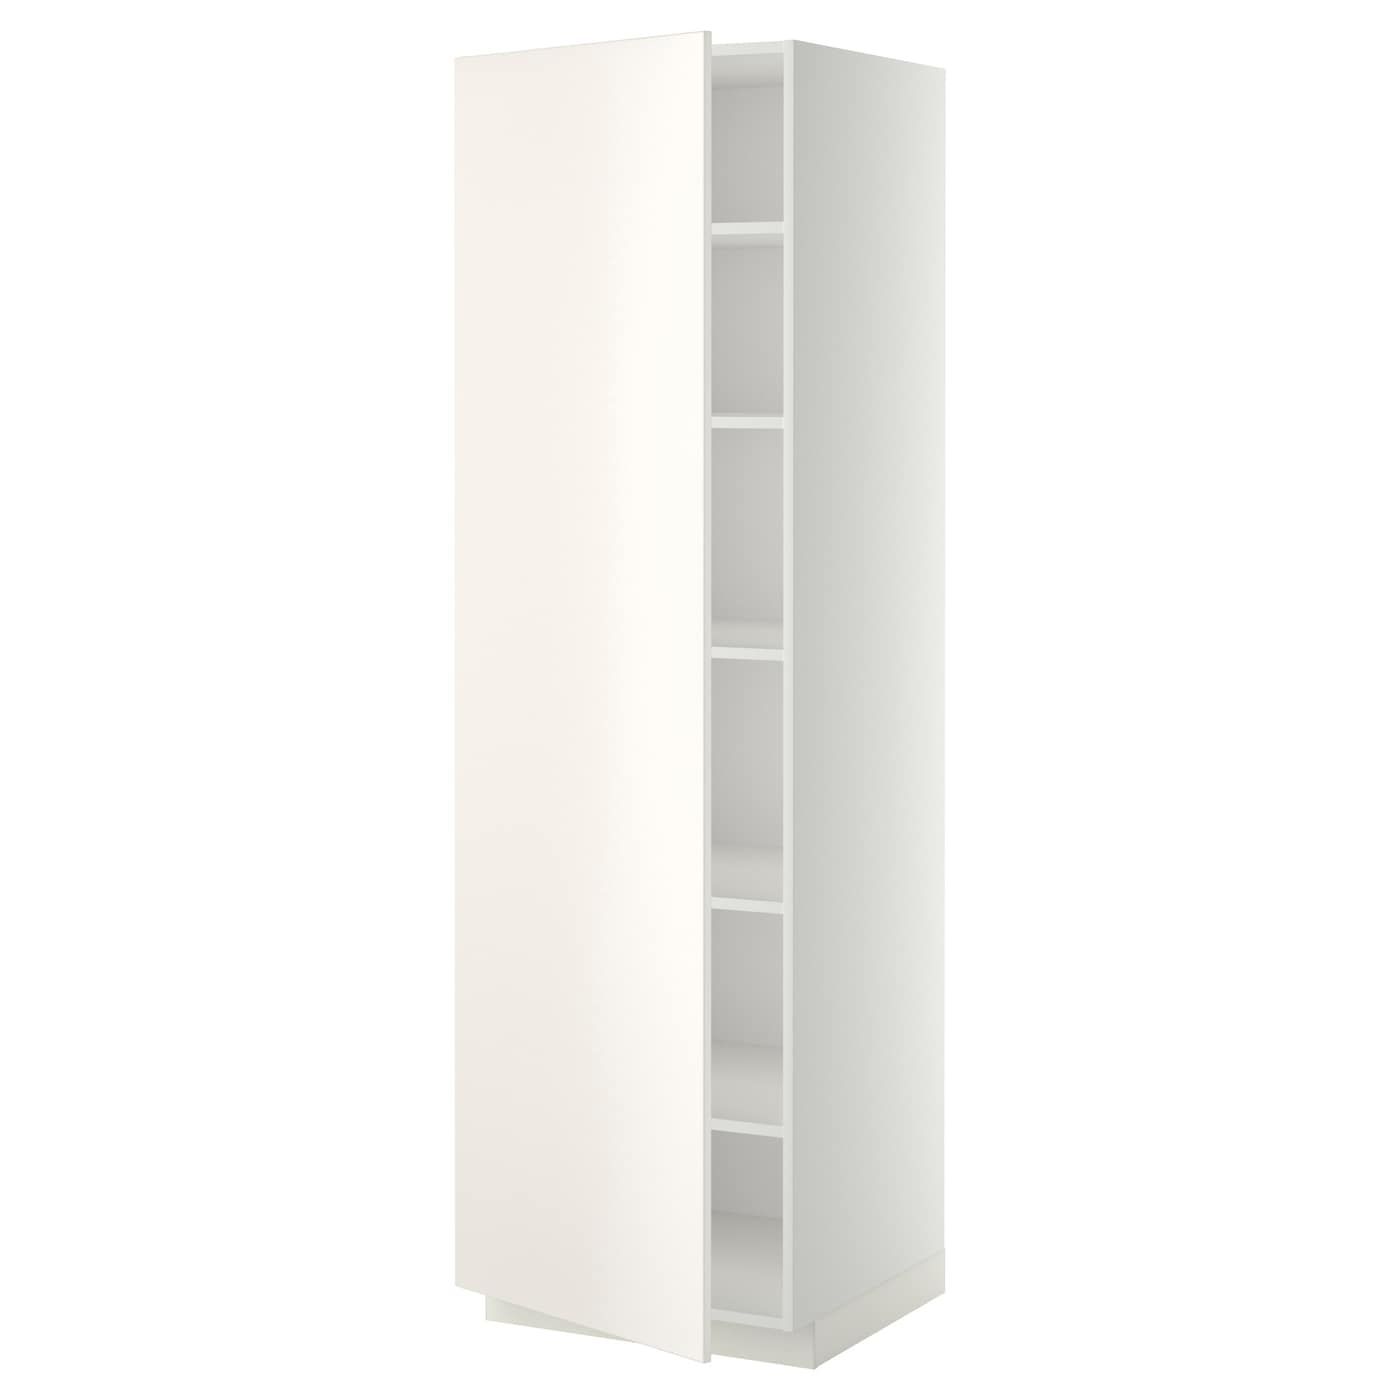 METOD High cabinet with shelves White veddinge white